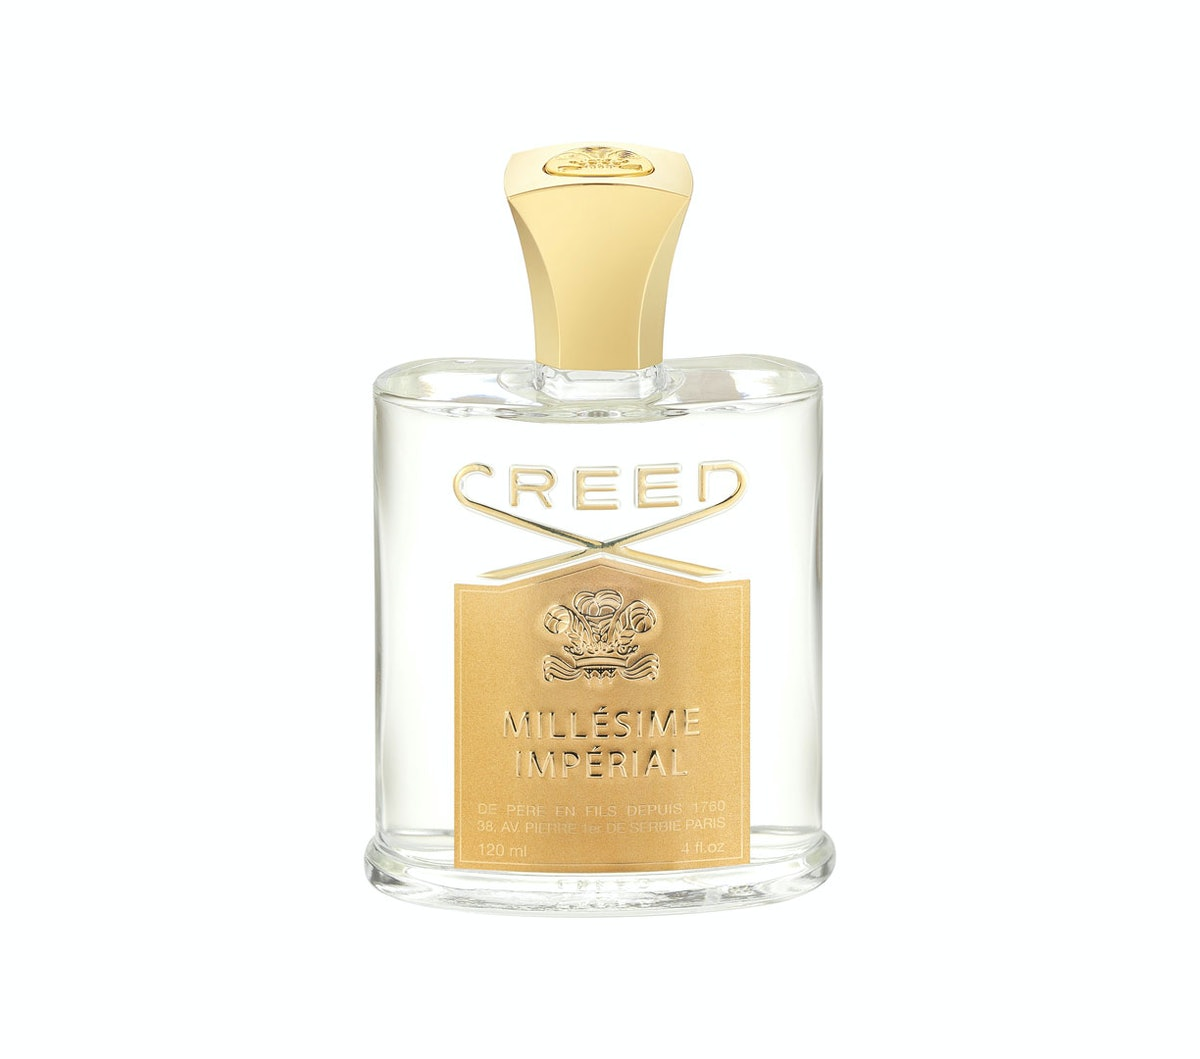 Creed Millesime Imperiale